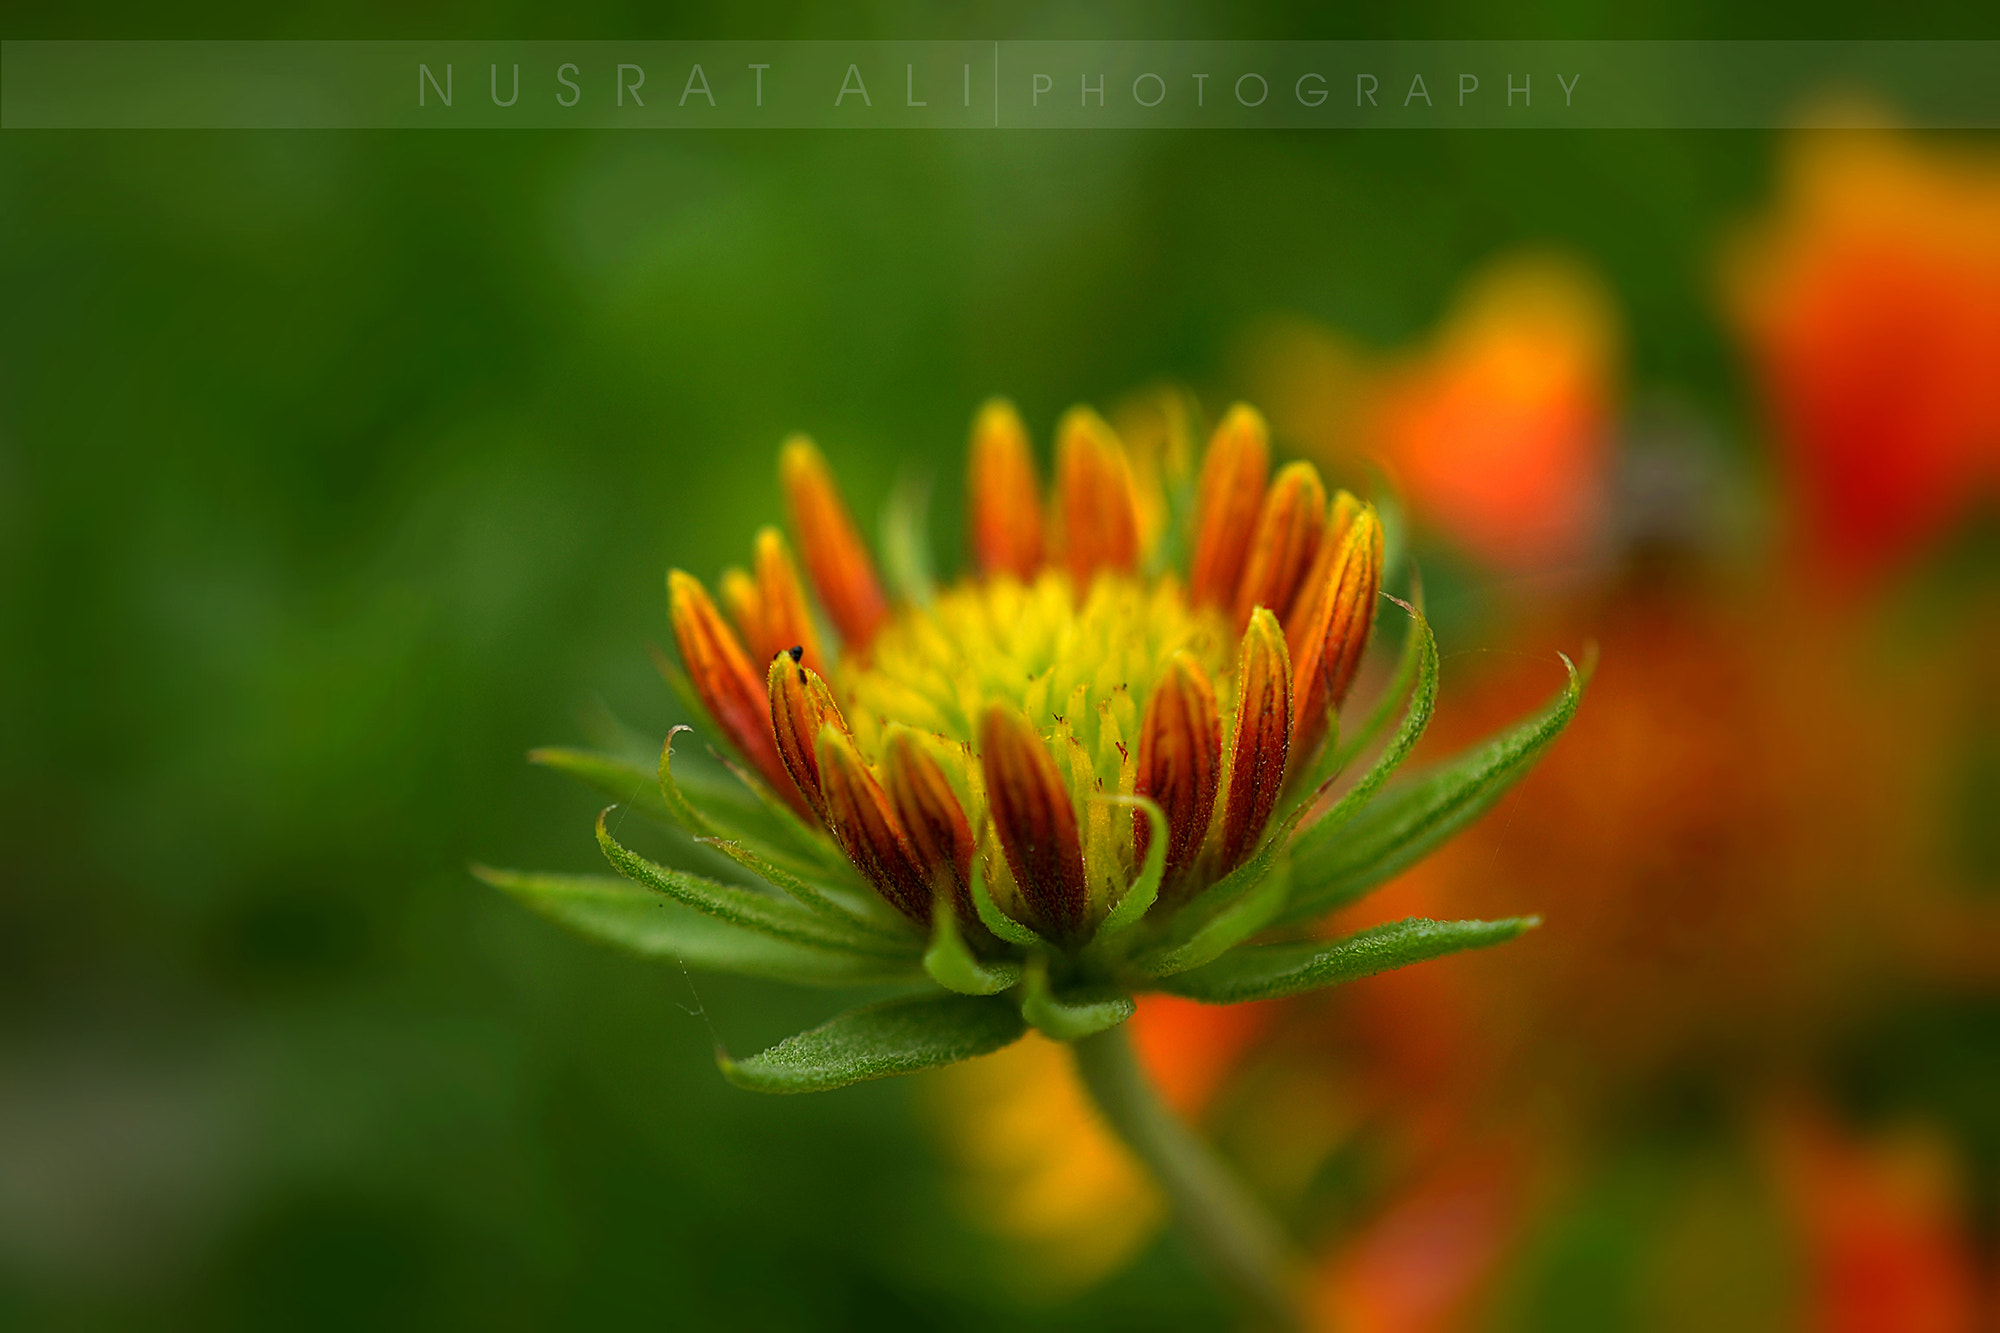 Photograph Flower of Hope.. by Nusrat Ali on 500px